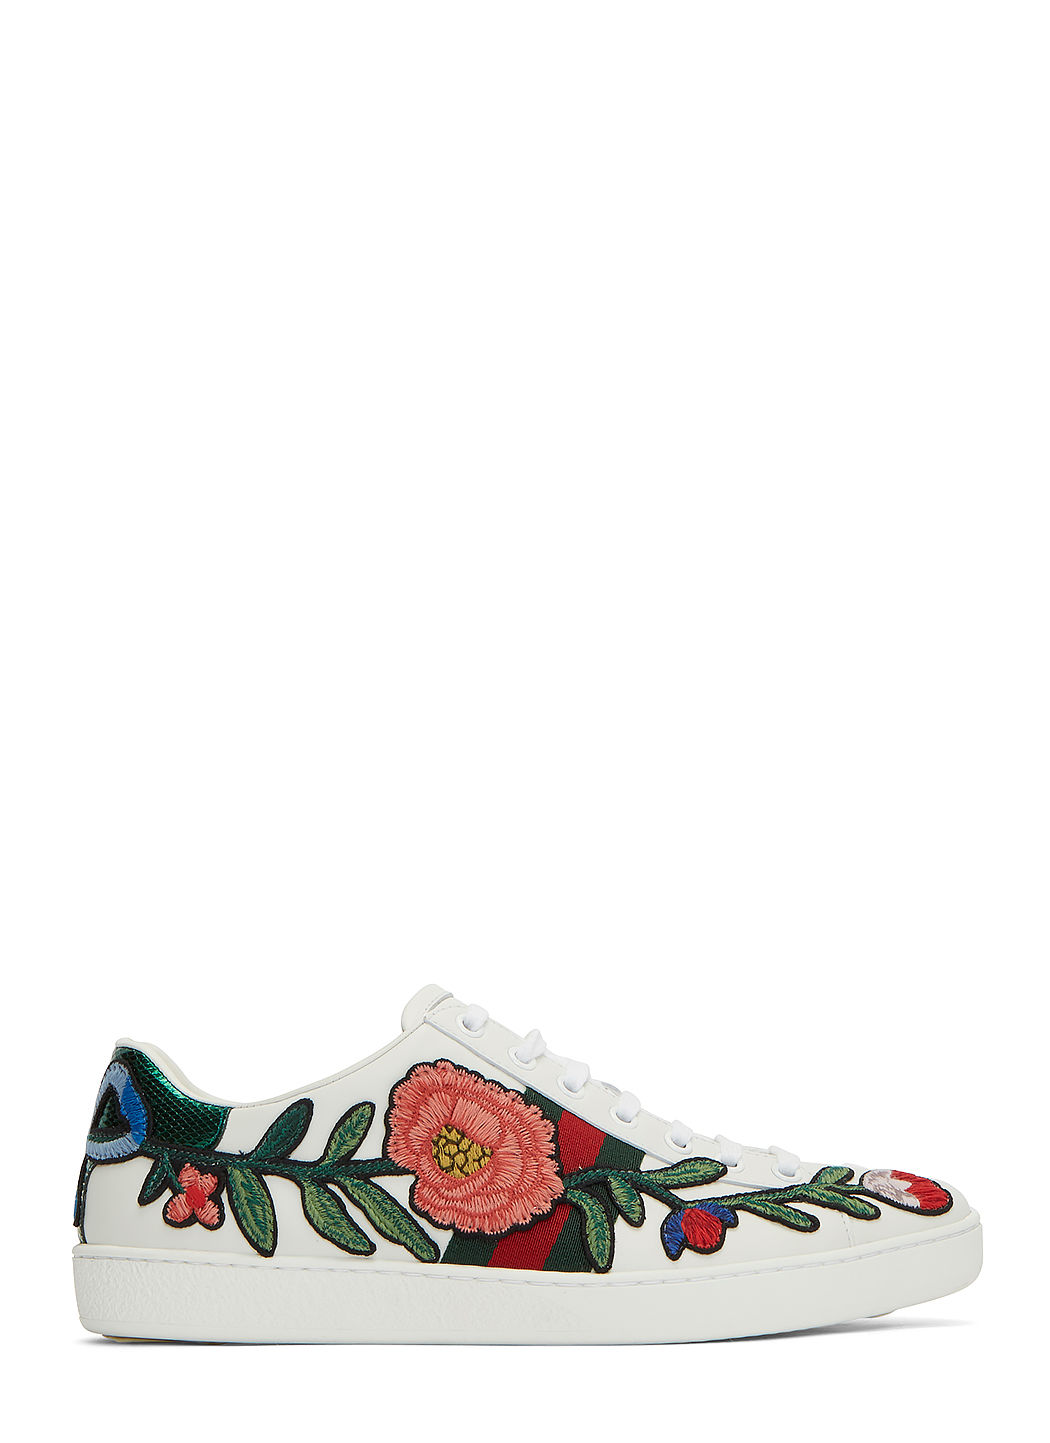 GUCCI New Ace Floral-Embroidered Low-Top Sneaker, White/Multi, Multi Colors in White-Multi